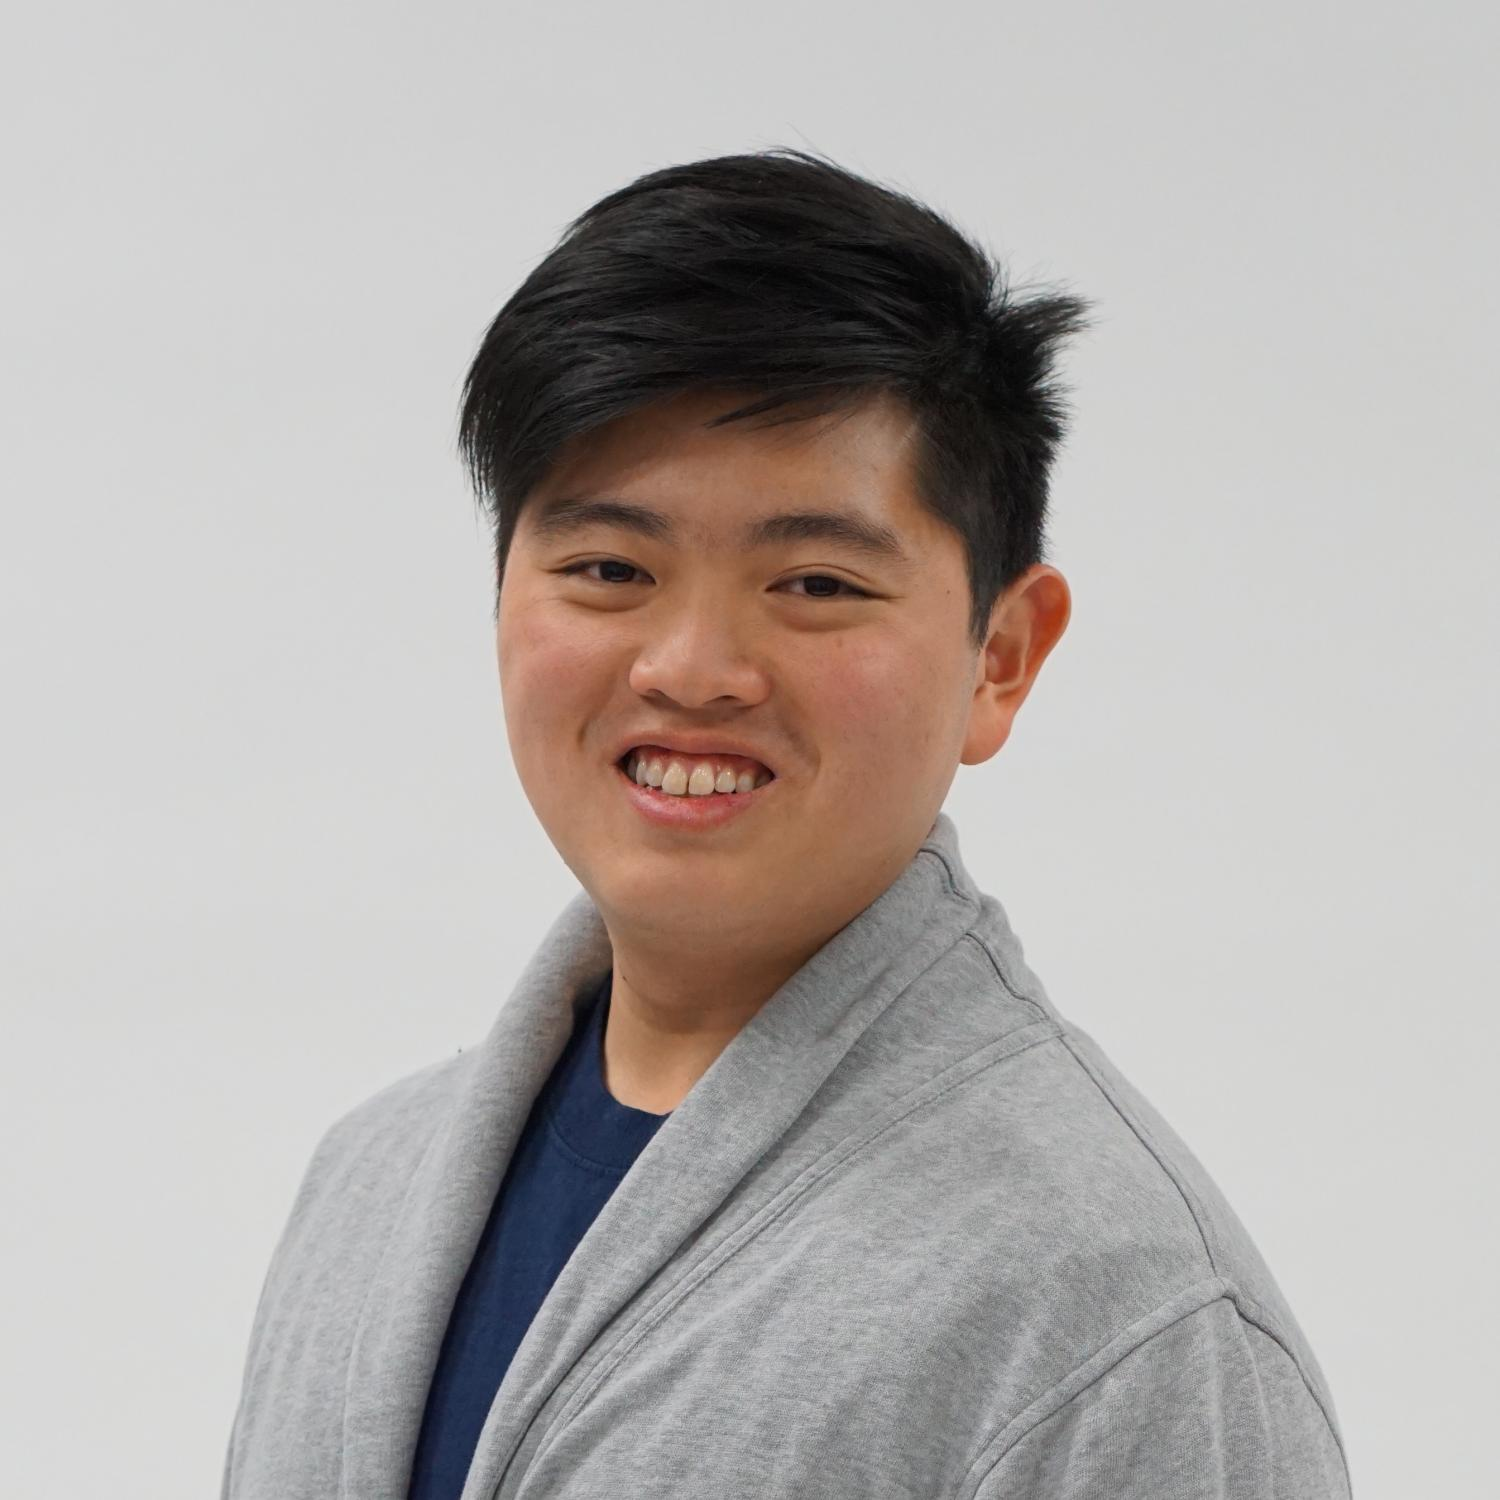 Professional headshot portrait of a young man with dark hair and Asian features, the designer Aspen Tng. He is slightly turned to the side and smiling.